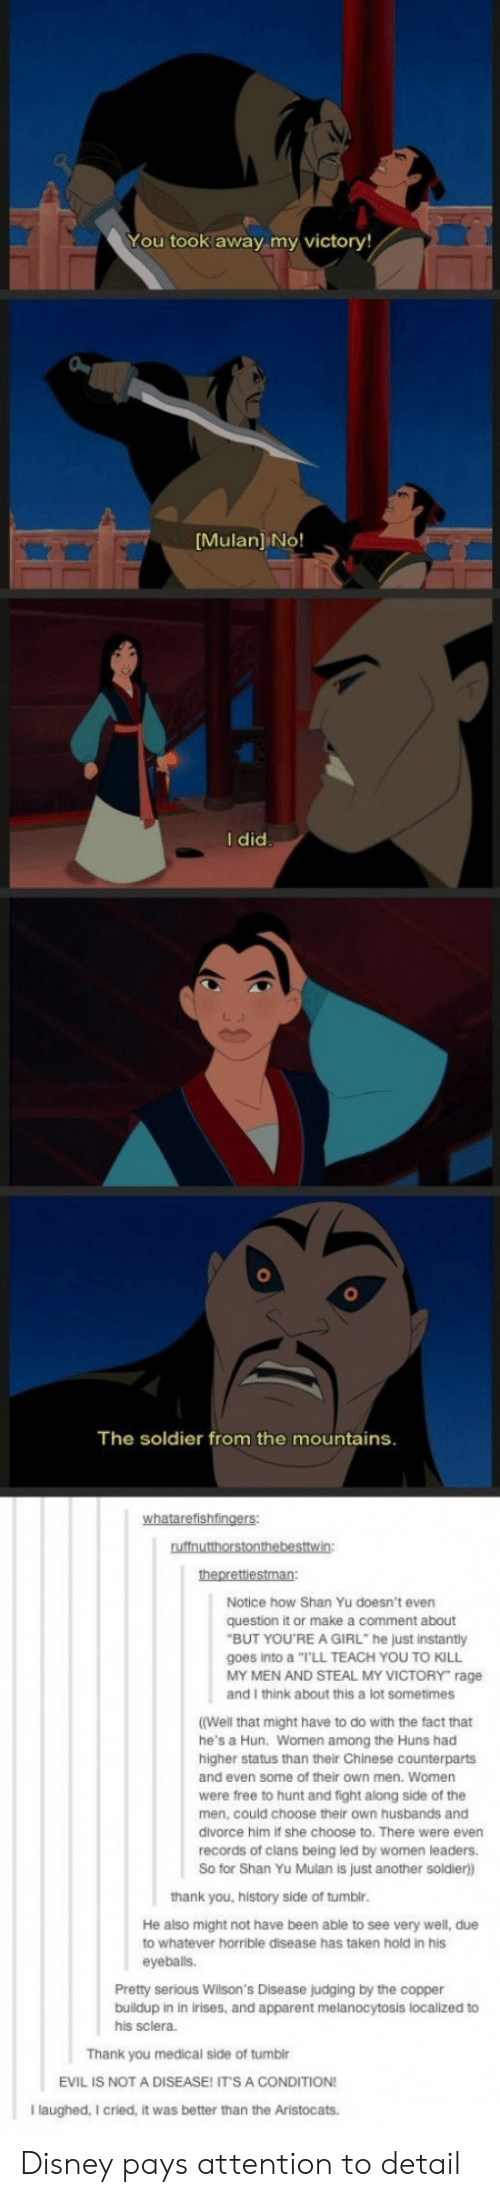 """Disney, Mulan, and Taken: You took away my victory!  Mulan] No!  I did  The soldier from the mountains  Notice how Shan Yu doesn't even  question it or make a comment about  goes into a """"I'LL TEACH YOU TO KILL  and I think about this a lot sometimes  (Well that might have to do with the fact that  higher status than their Chinese counterparts  BUT YOU'RE A GIRL"""" he just instantly  MY MEN AND STEAL MY VICTORY"""" rage  MY MEN AND  he's a Hun. Women among the Huns had  and even some of their own men. Women  were free to hunt and fight along side of the  men, could choose their own husbands and  divorce him if she choose to. There were even  records of clans being led by women leaders.  So for Shan Yu Mulan is just another soldier)  thank you, history side of tumblr  He also might not have been able to see very well, due  to whatever horrible disease has taken hold in his  eyeballs.  Pretty serious Wilson's Disease judging by the copper  buildup in in irises, and apparent melanocytosis localized to  his sclera  Thank you medical side of tumblr  EVIL IS NOT A DISEASE! ITS A CONDITION  Ilaughed, I cried, it was better than the Aristocats. Disney pays attention to detail"""